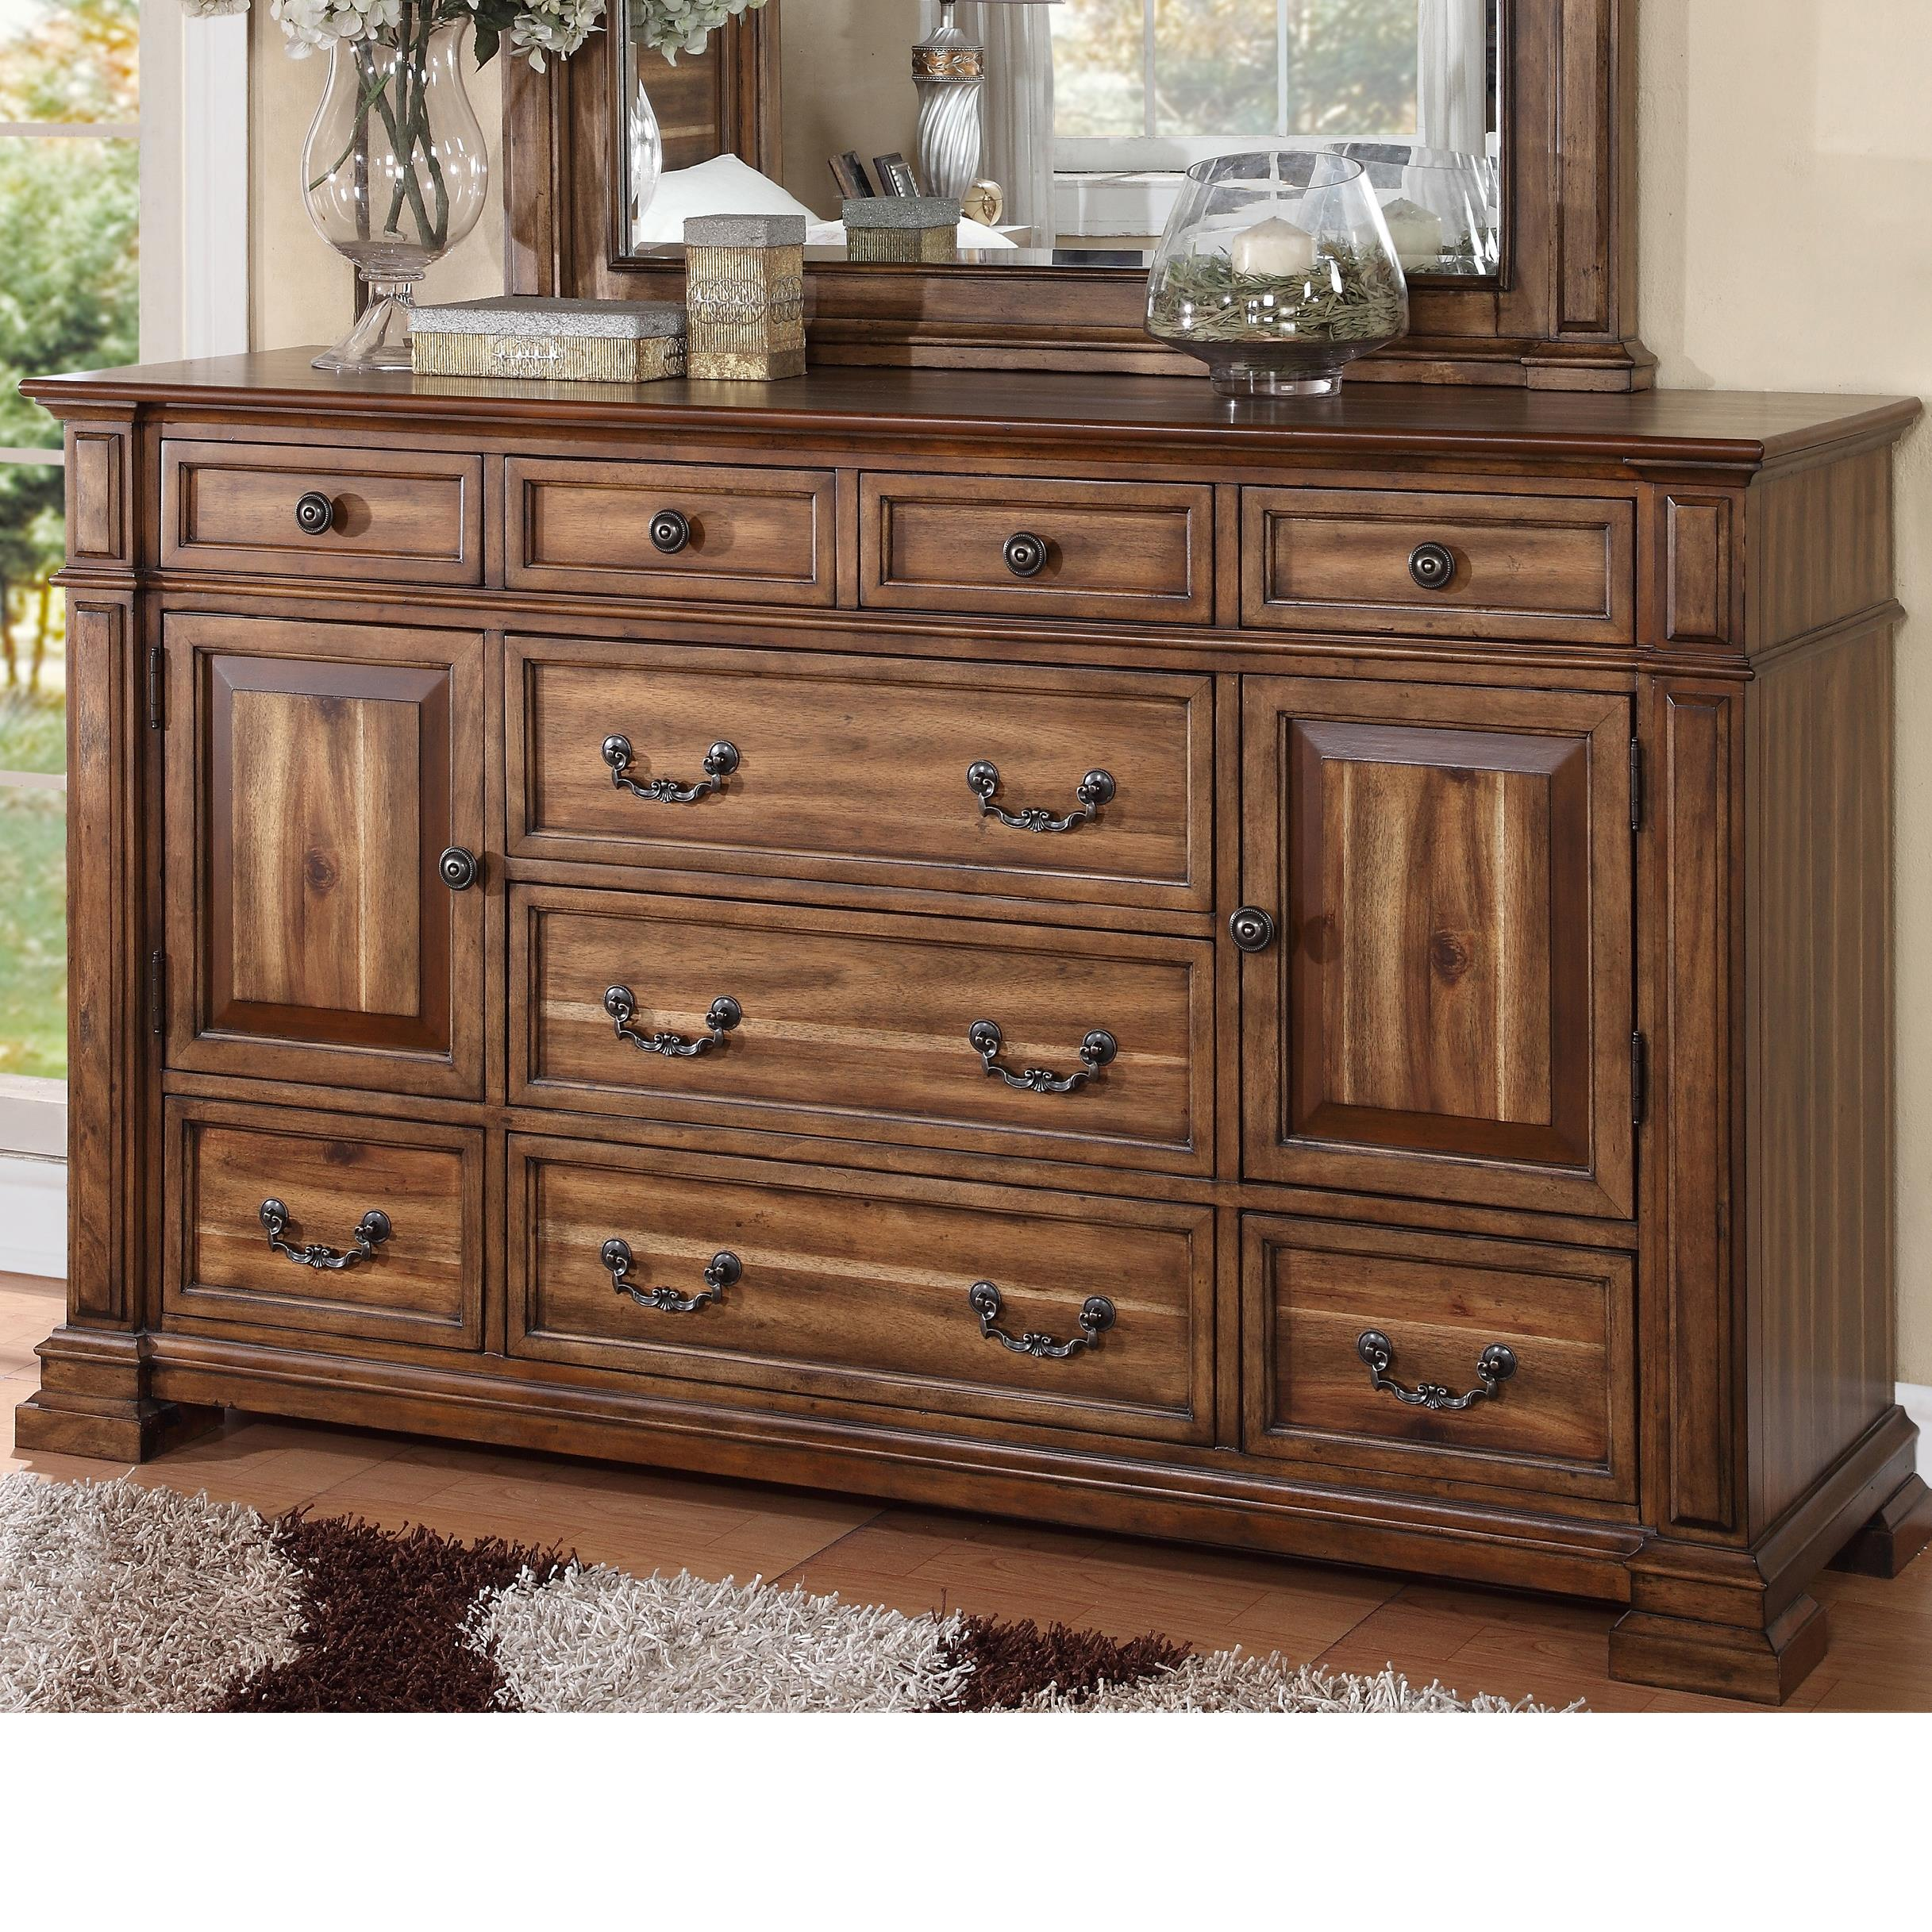 Legends Furniture Barclay Dresser - Item Number: ZBCL-7013